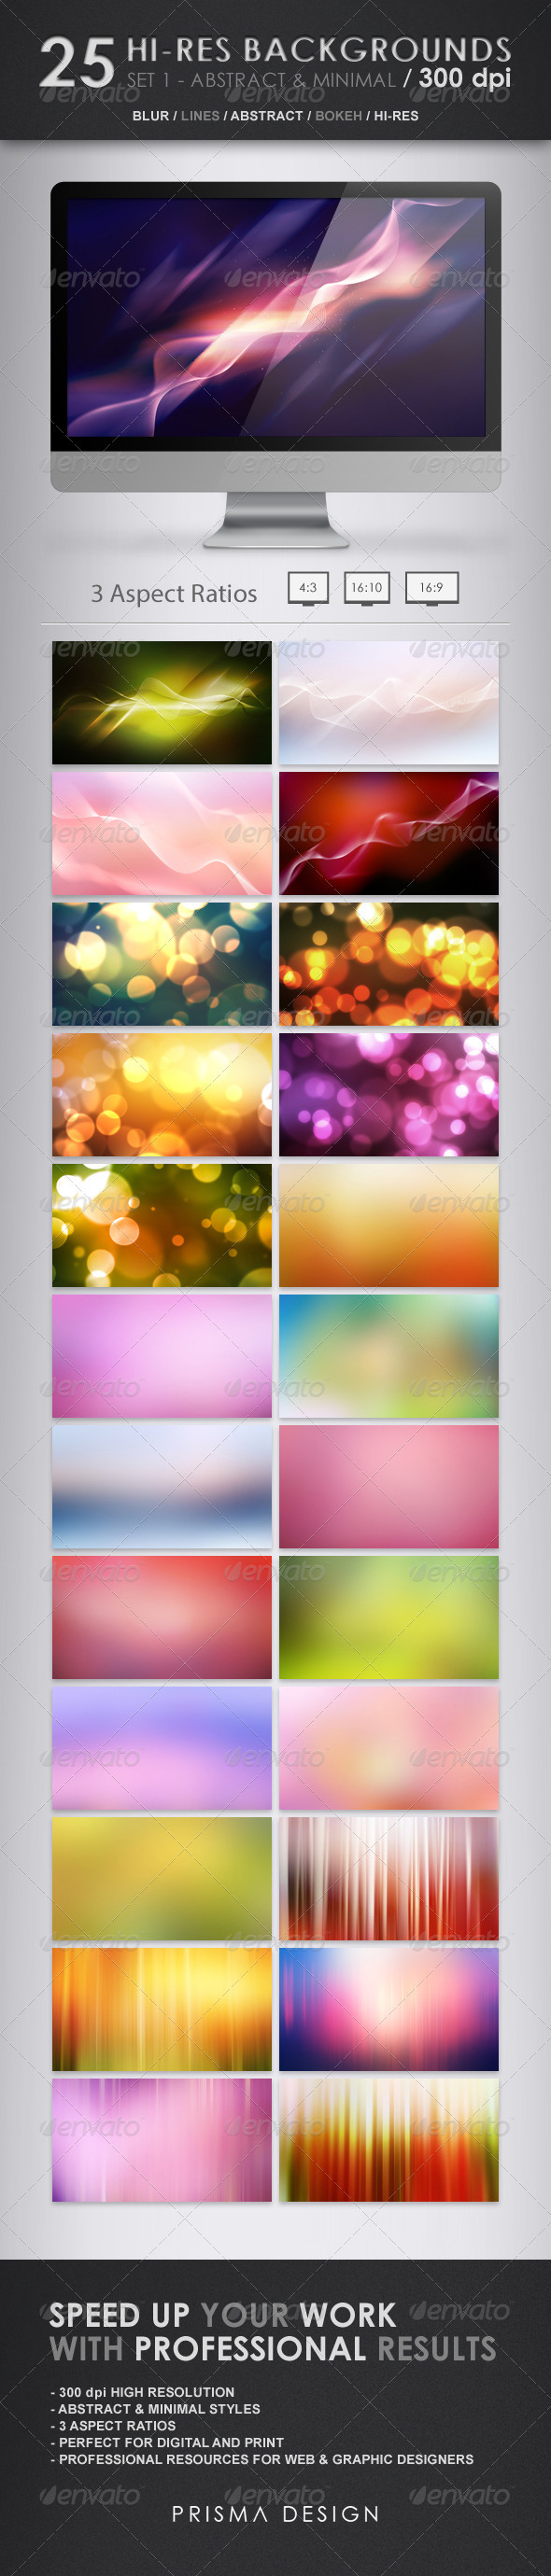 25 Hi-Res Backgrounds - Abstract & Minimal - Abstract Backgrounds